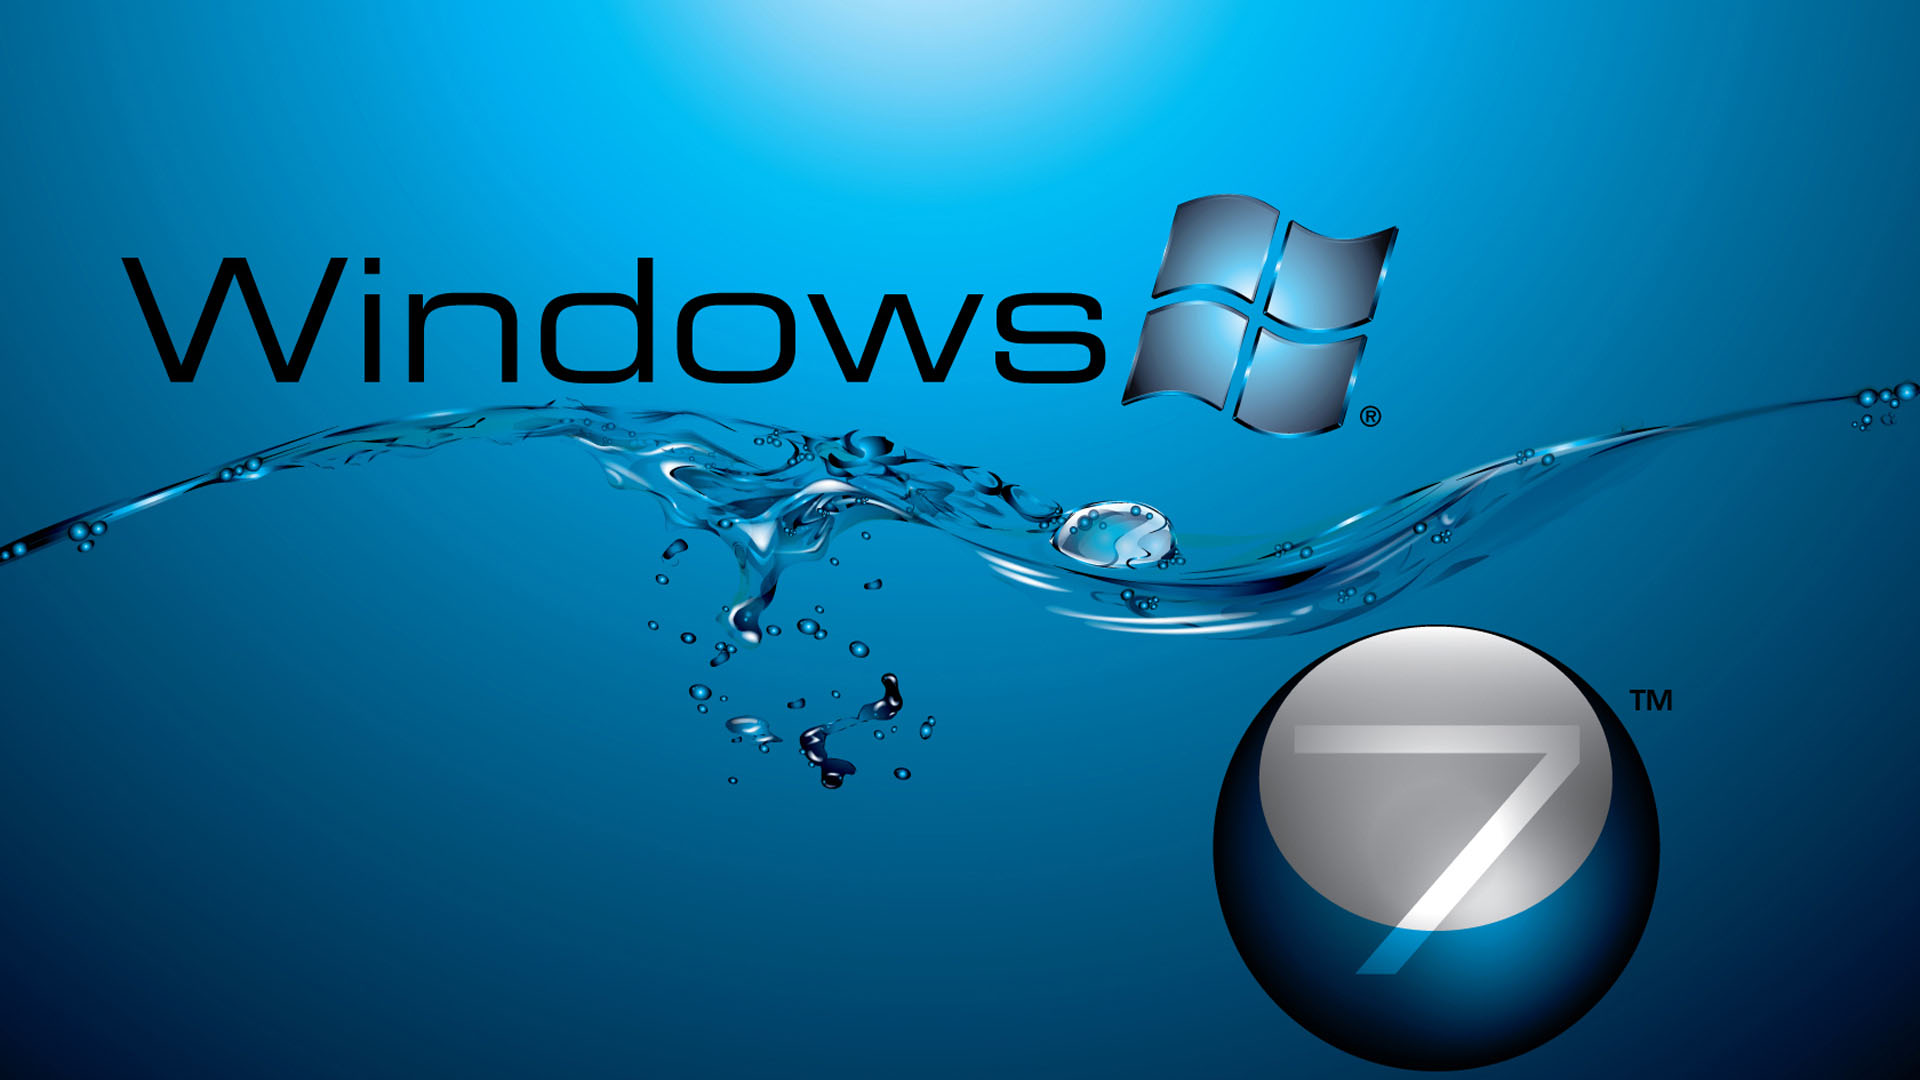 Windows 7 HD Wallpapers 1080p Free Download